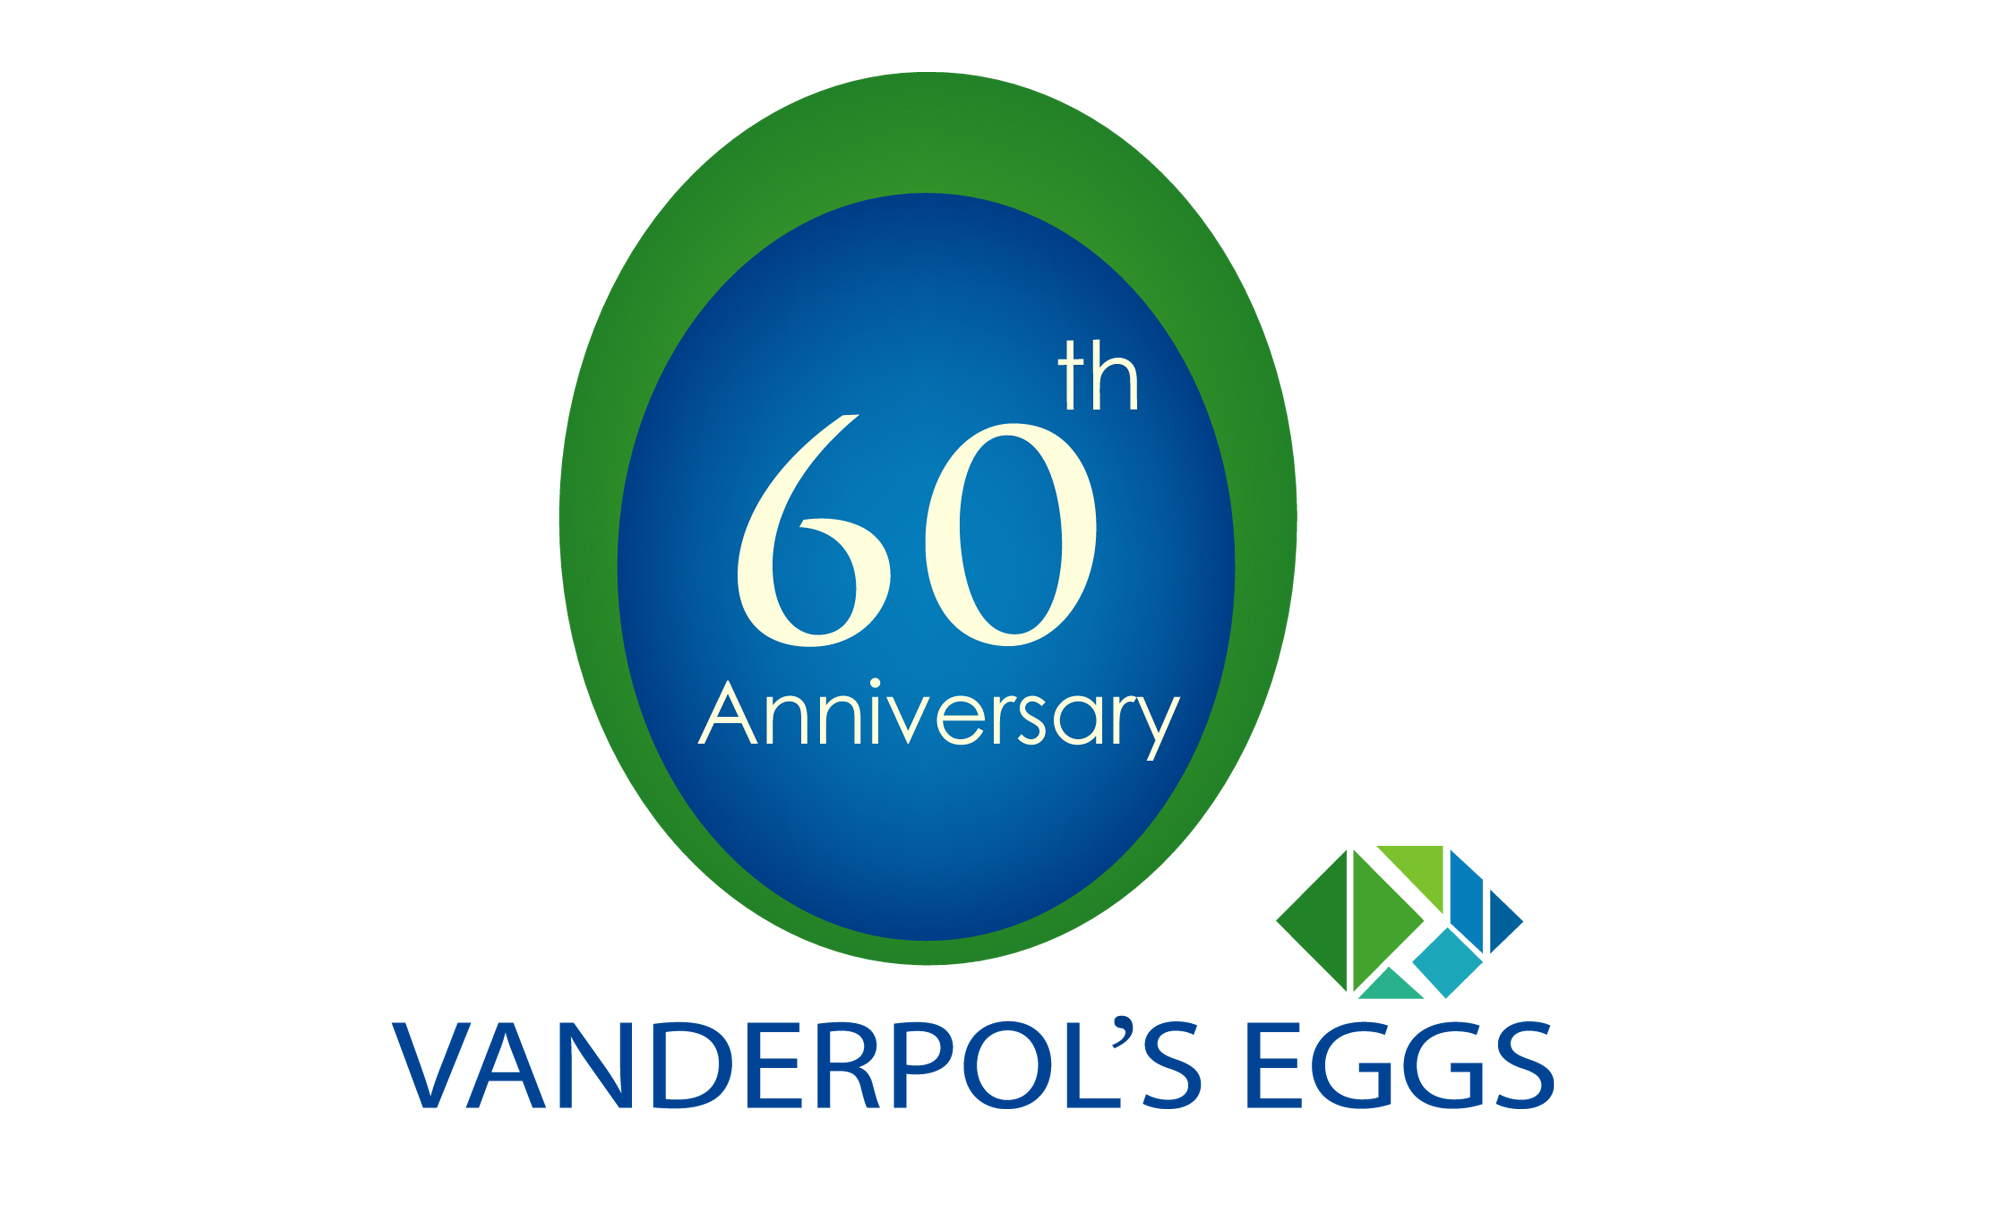 Logo Design by V Anil Yadavv - Entry No. 26 in the Logo Design Contest Unique Logo Design Wanted for Vanderpols Eggs Ltd.